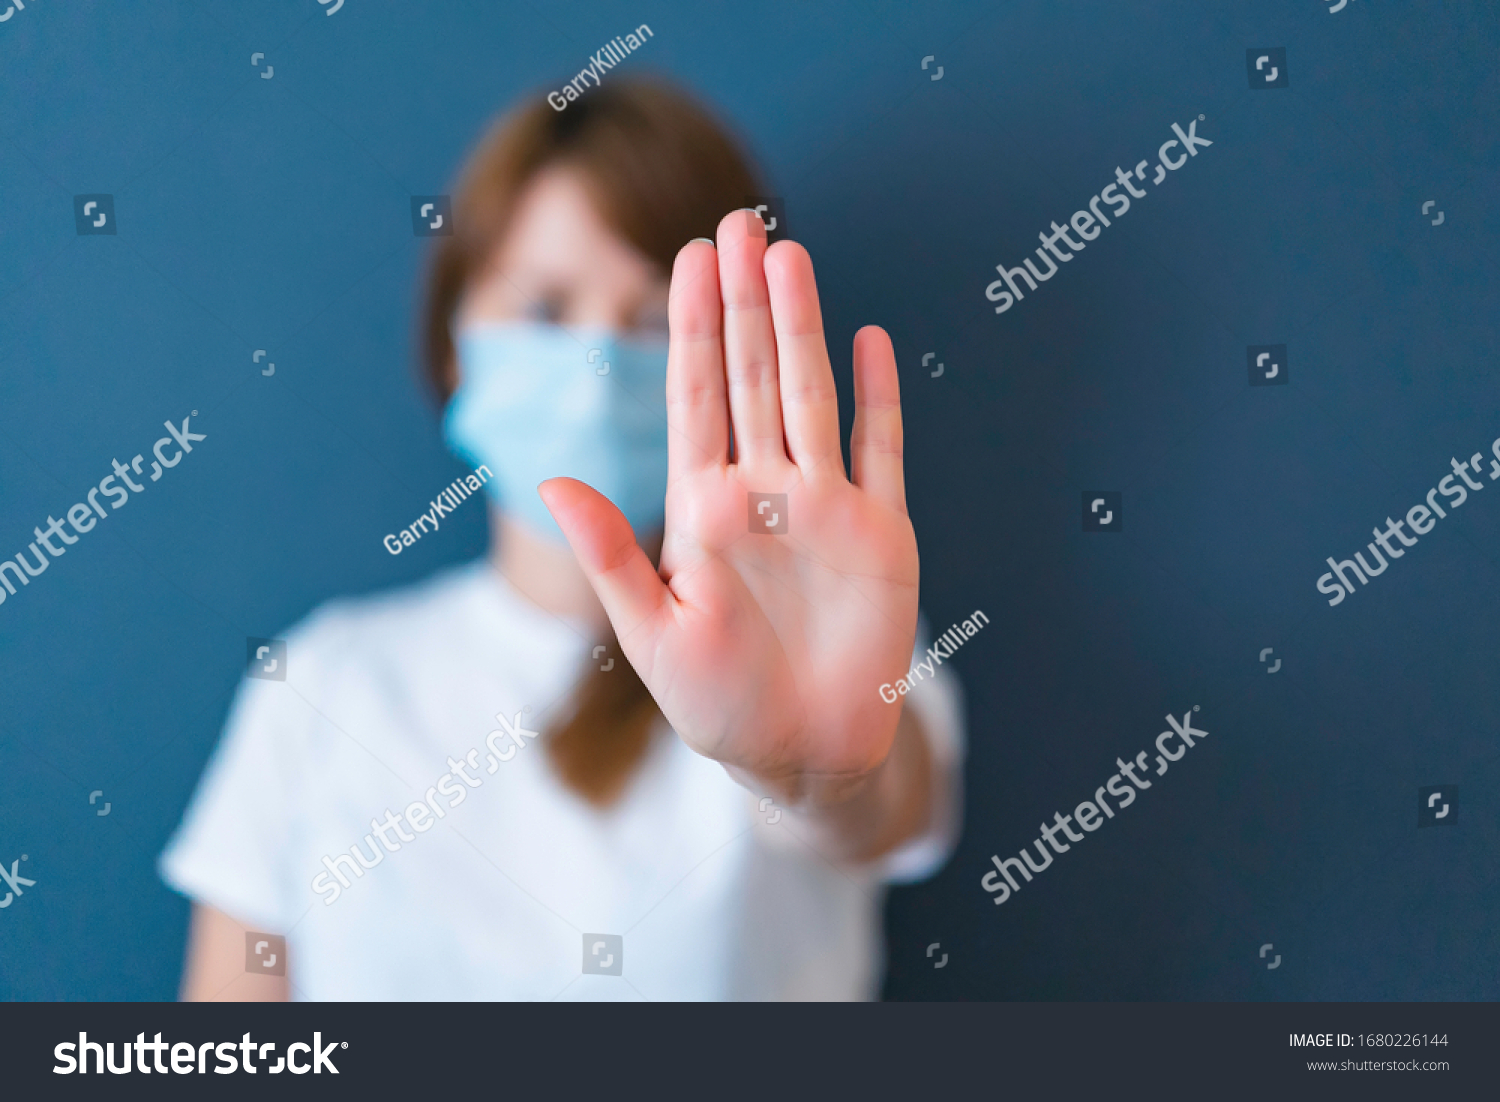 Coronavirus concept. Girl wearing mask for protection from disease and show stop hands gesture for stop corona virus outbreak. Global call to stay home #1680226144